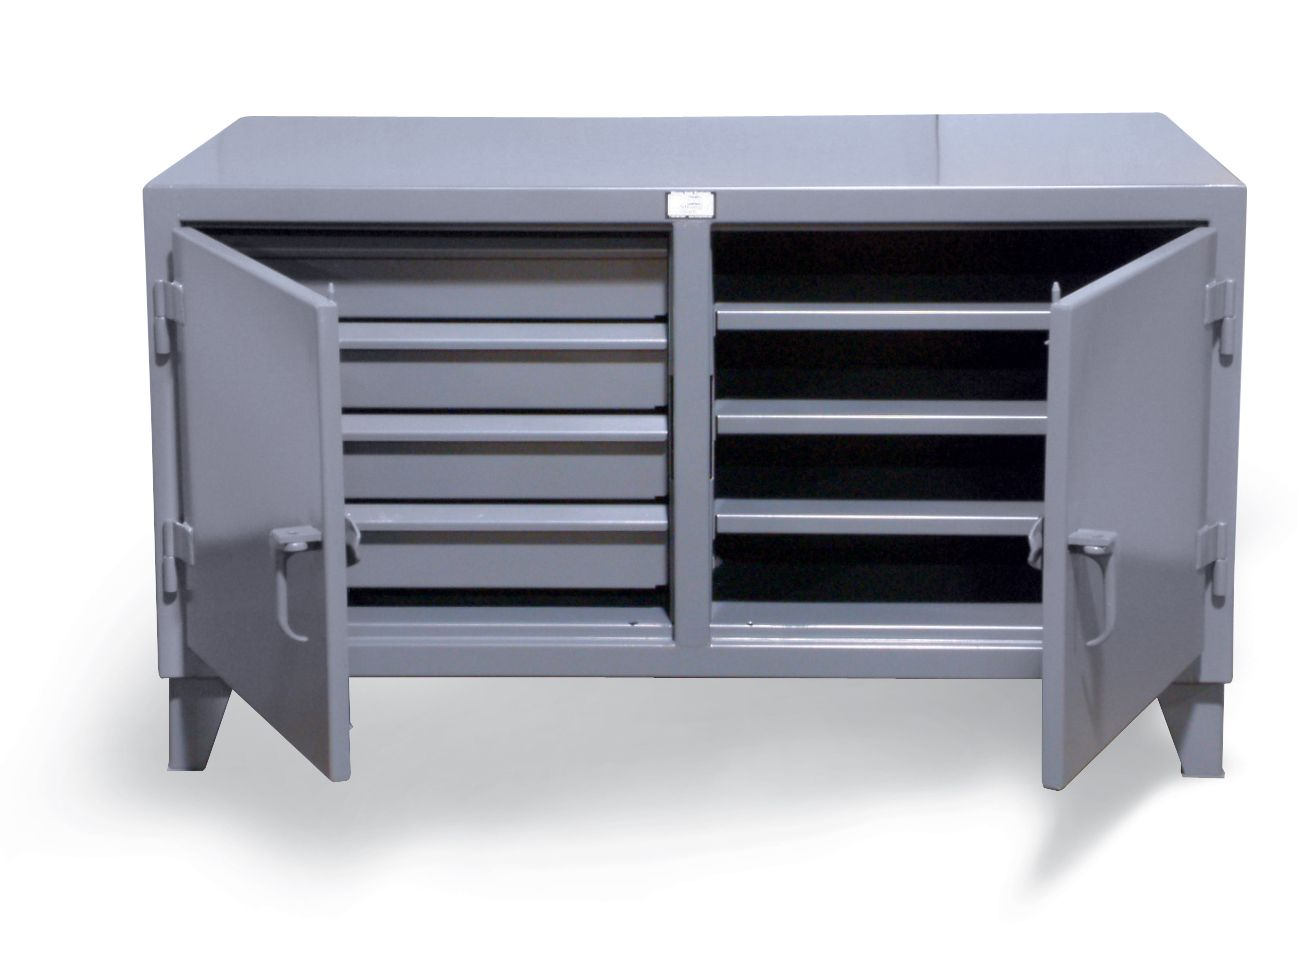 Cabinet Workbench With Hidden Drawer Storage   Double Shift Cabinet  Workbench With 4 Drawers On Right And 3 Shelves On Left. Each Side Is  Lockable With A ...